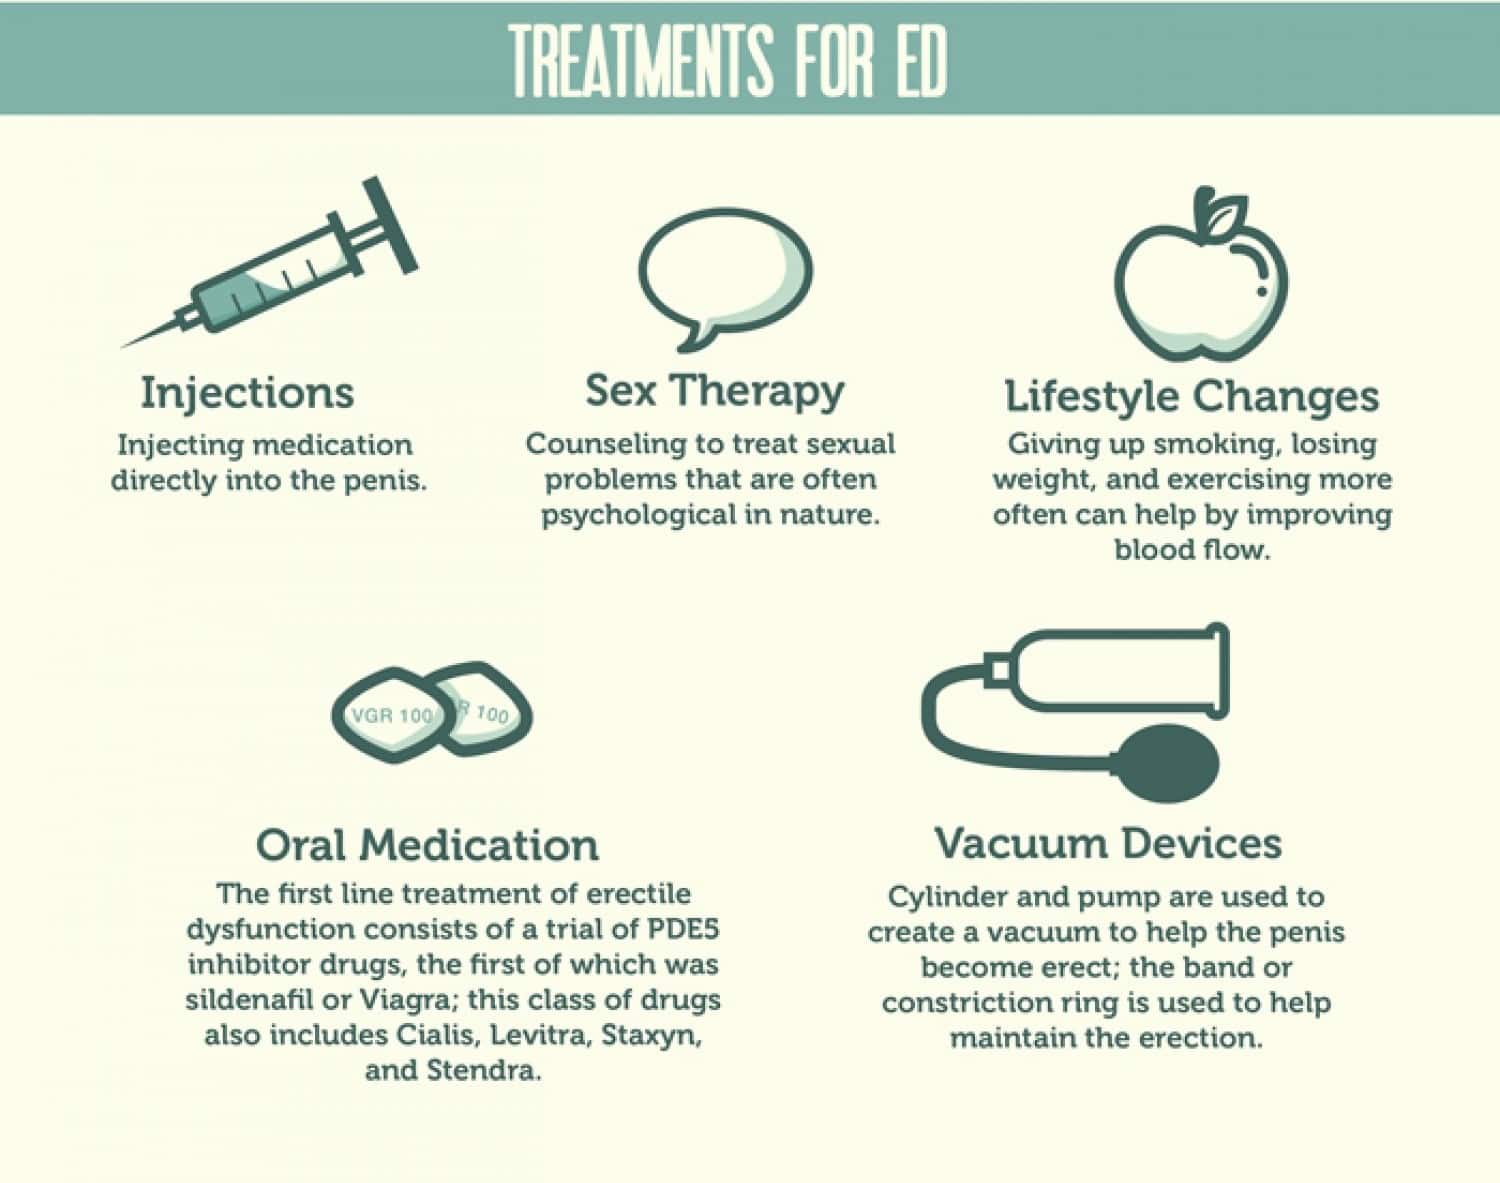 treatments for ed